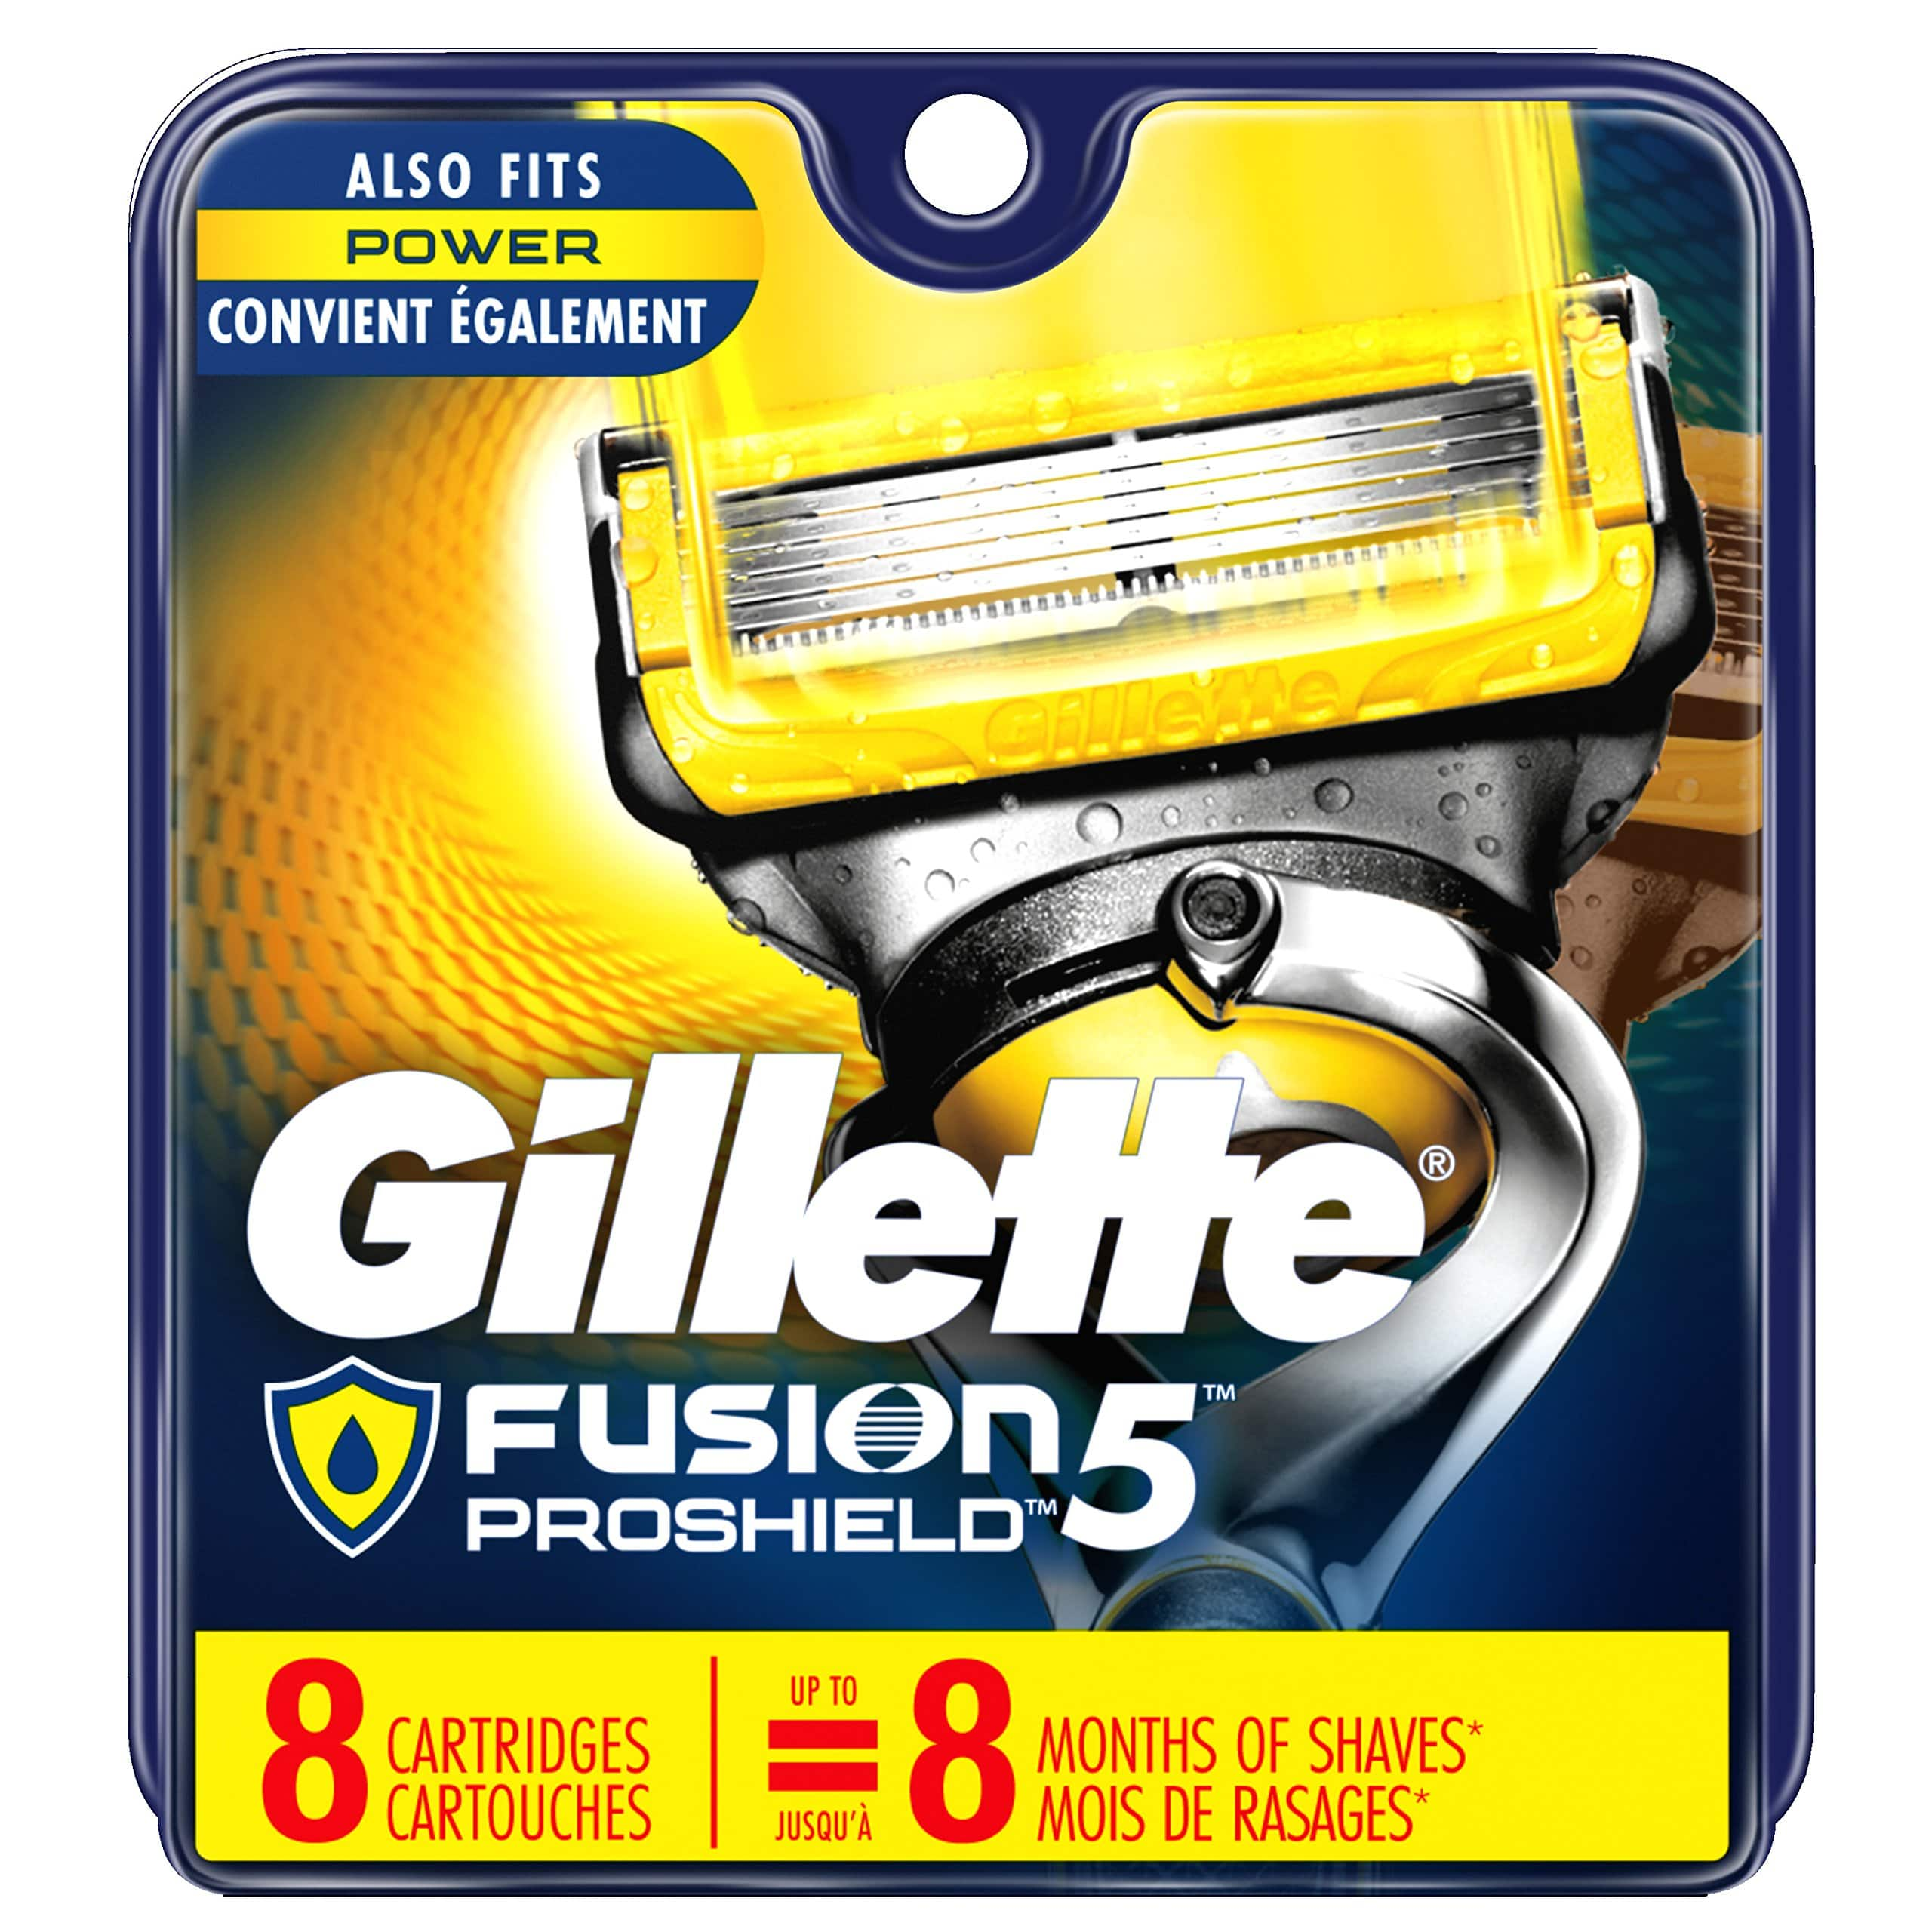 Gillette Fusion5 ProGlide Power Men's Razor with 1 Razor Blade Refill and 1 Battery for $6.21 + tax with Amazon S&S